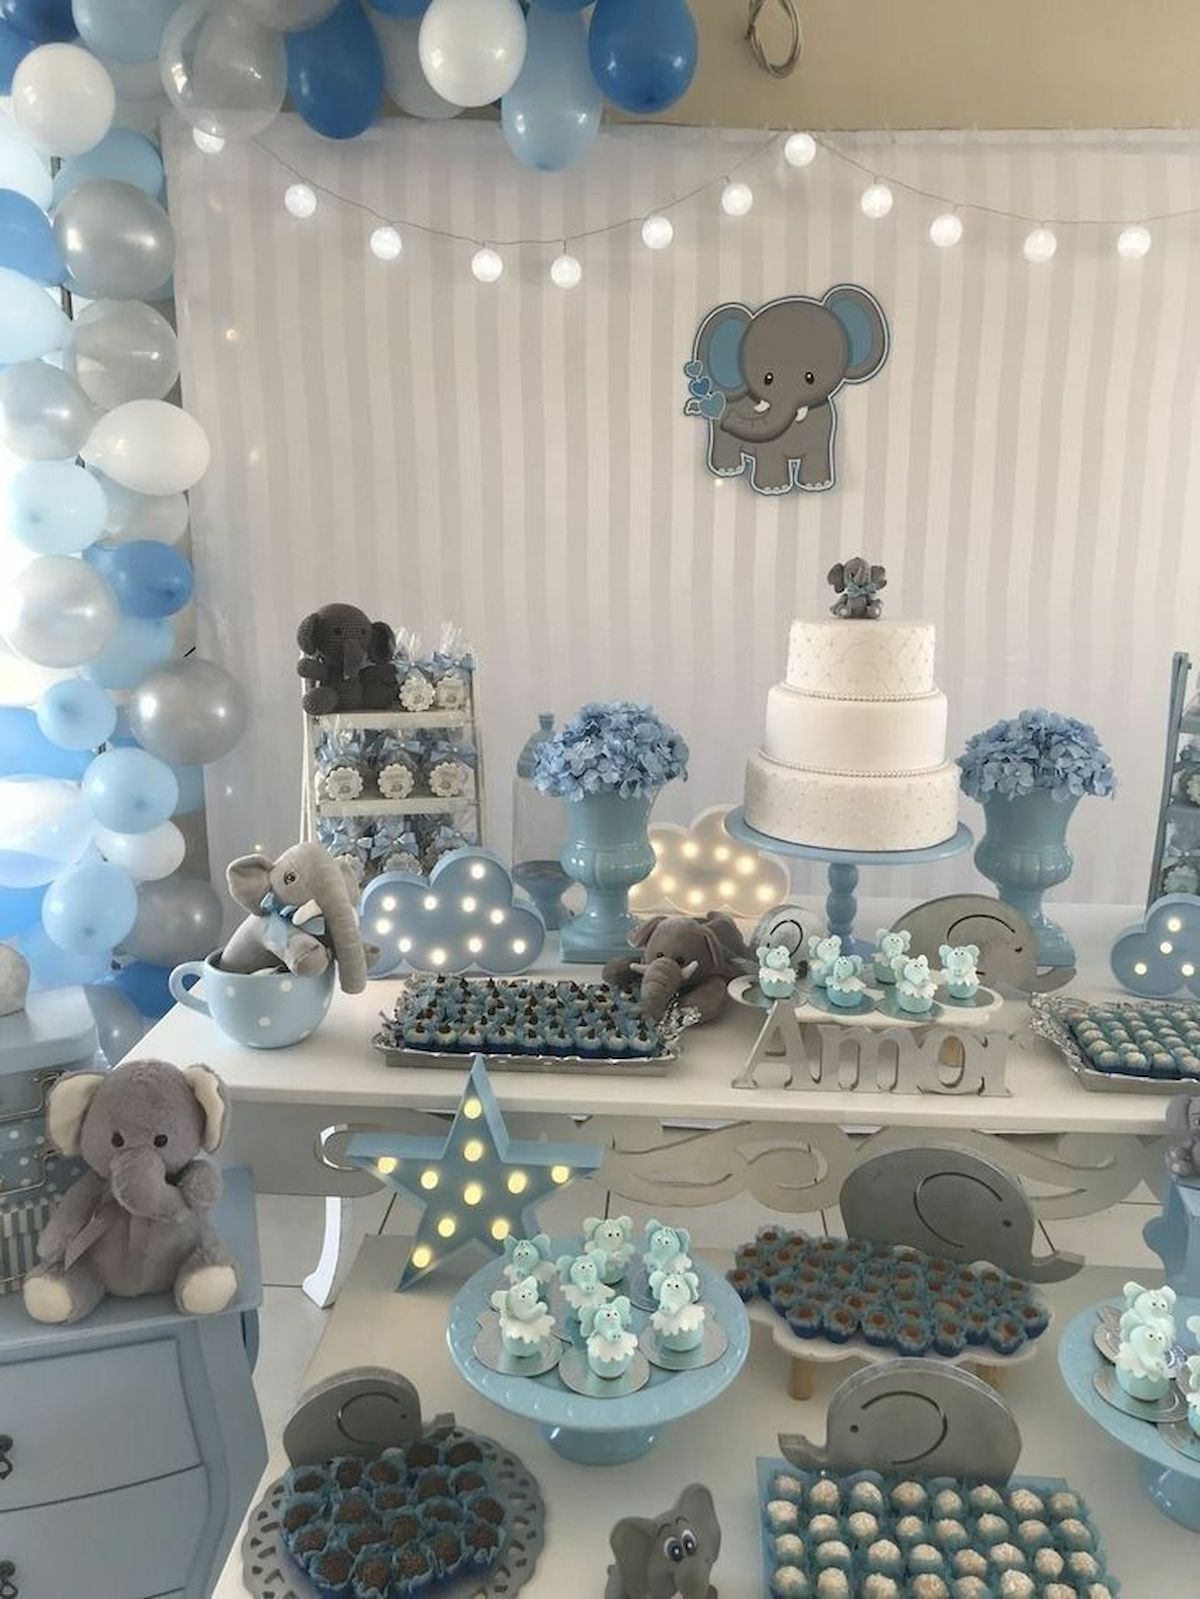 50 Awesome Baby Shower Themes And Decorating Ideas For Boy Peanut Baby Shower Elephant Baby Shower Boy Blue Baby Shower